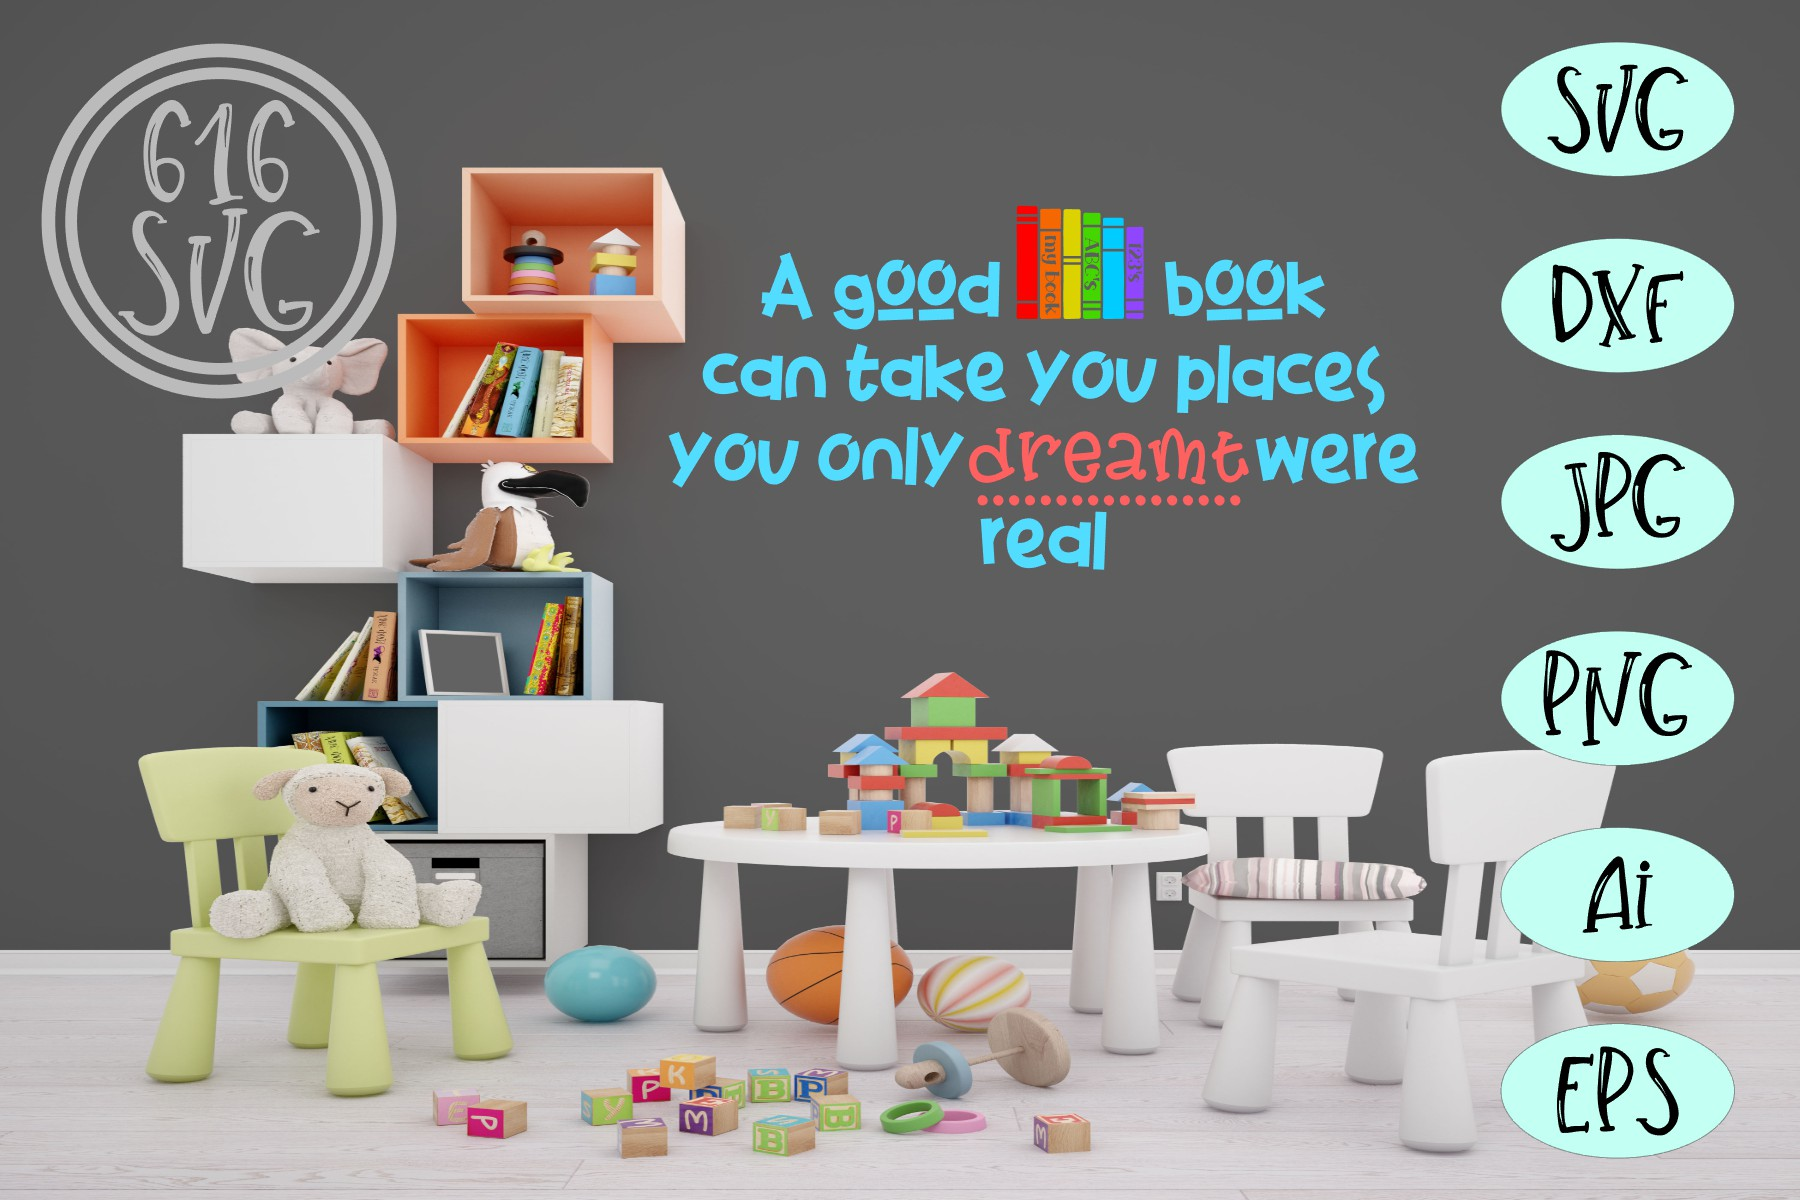 Childrens Library Bundle SVG, DXF, Ai, PNG example image 5